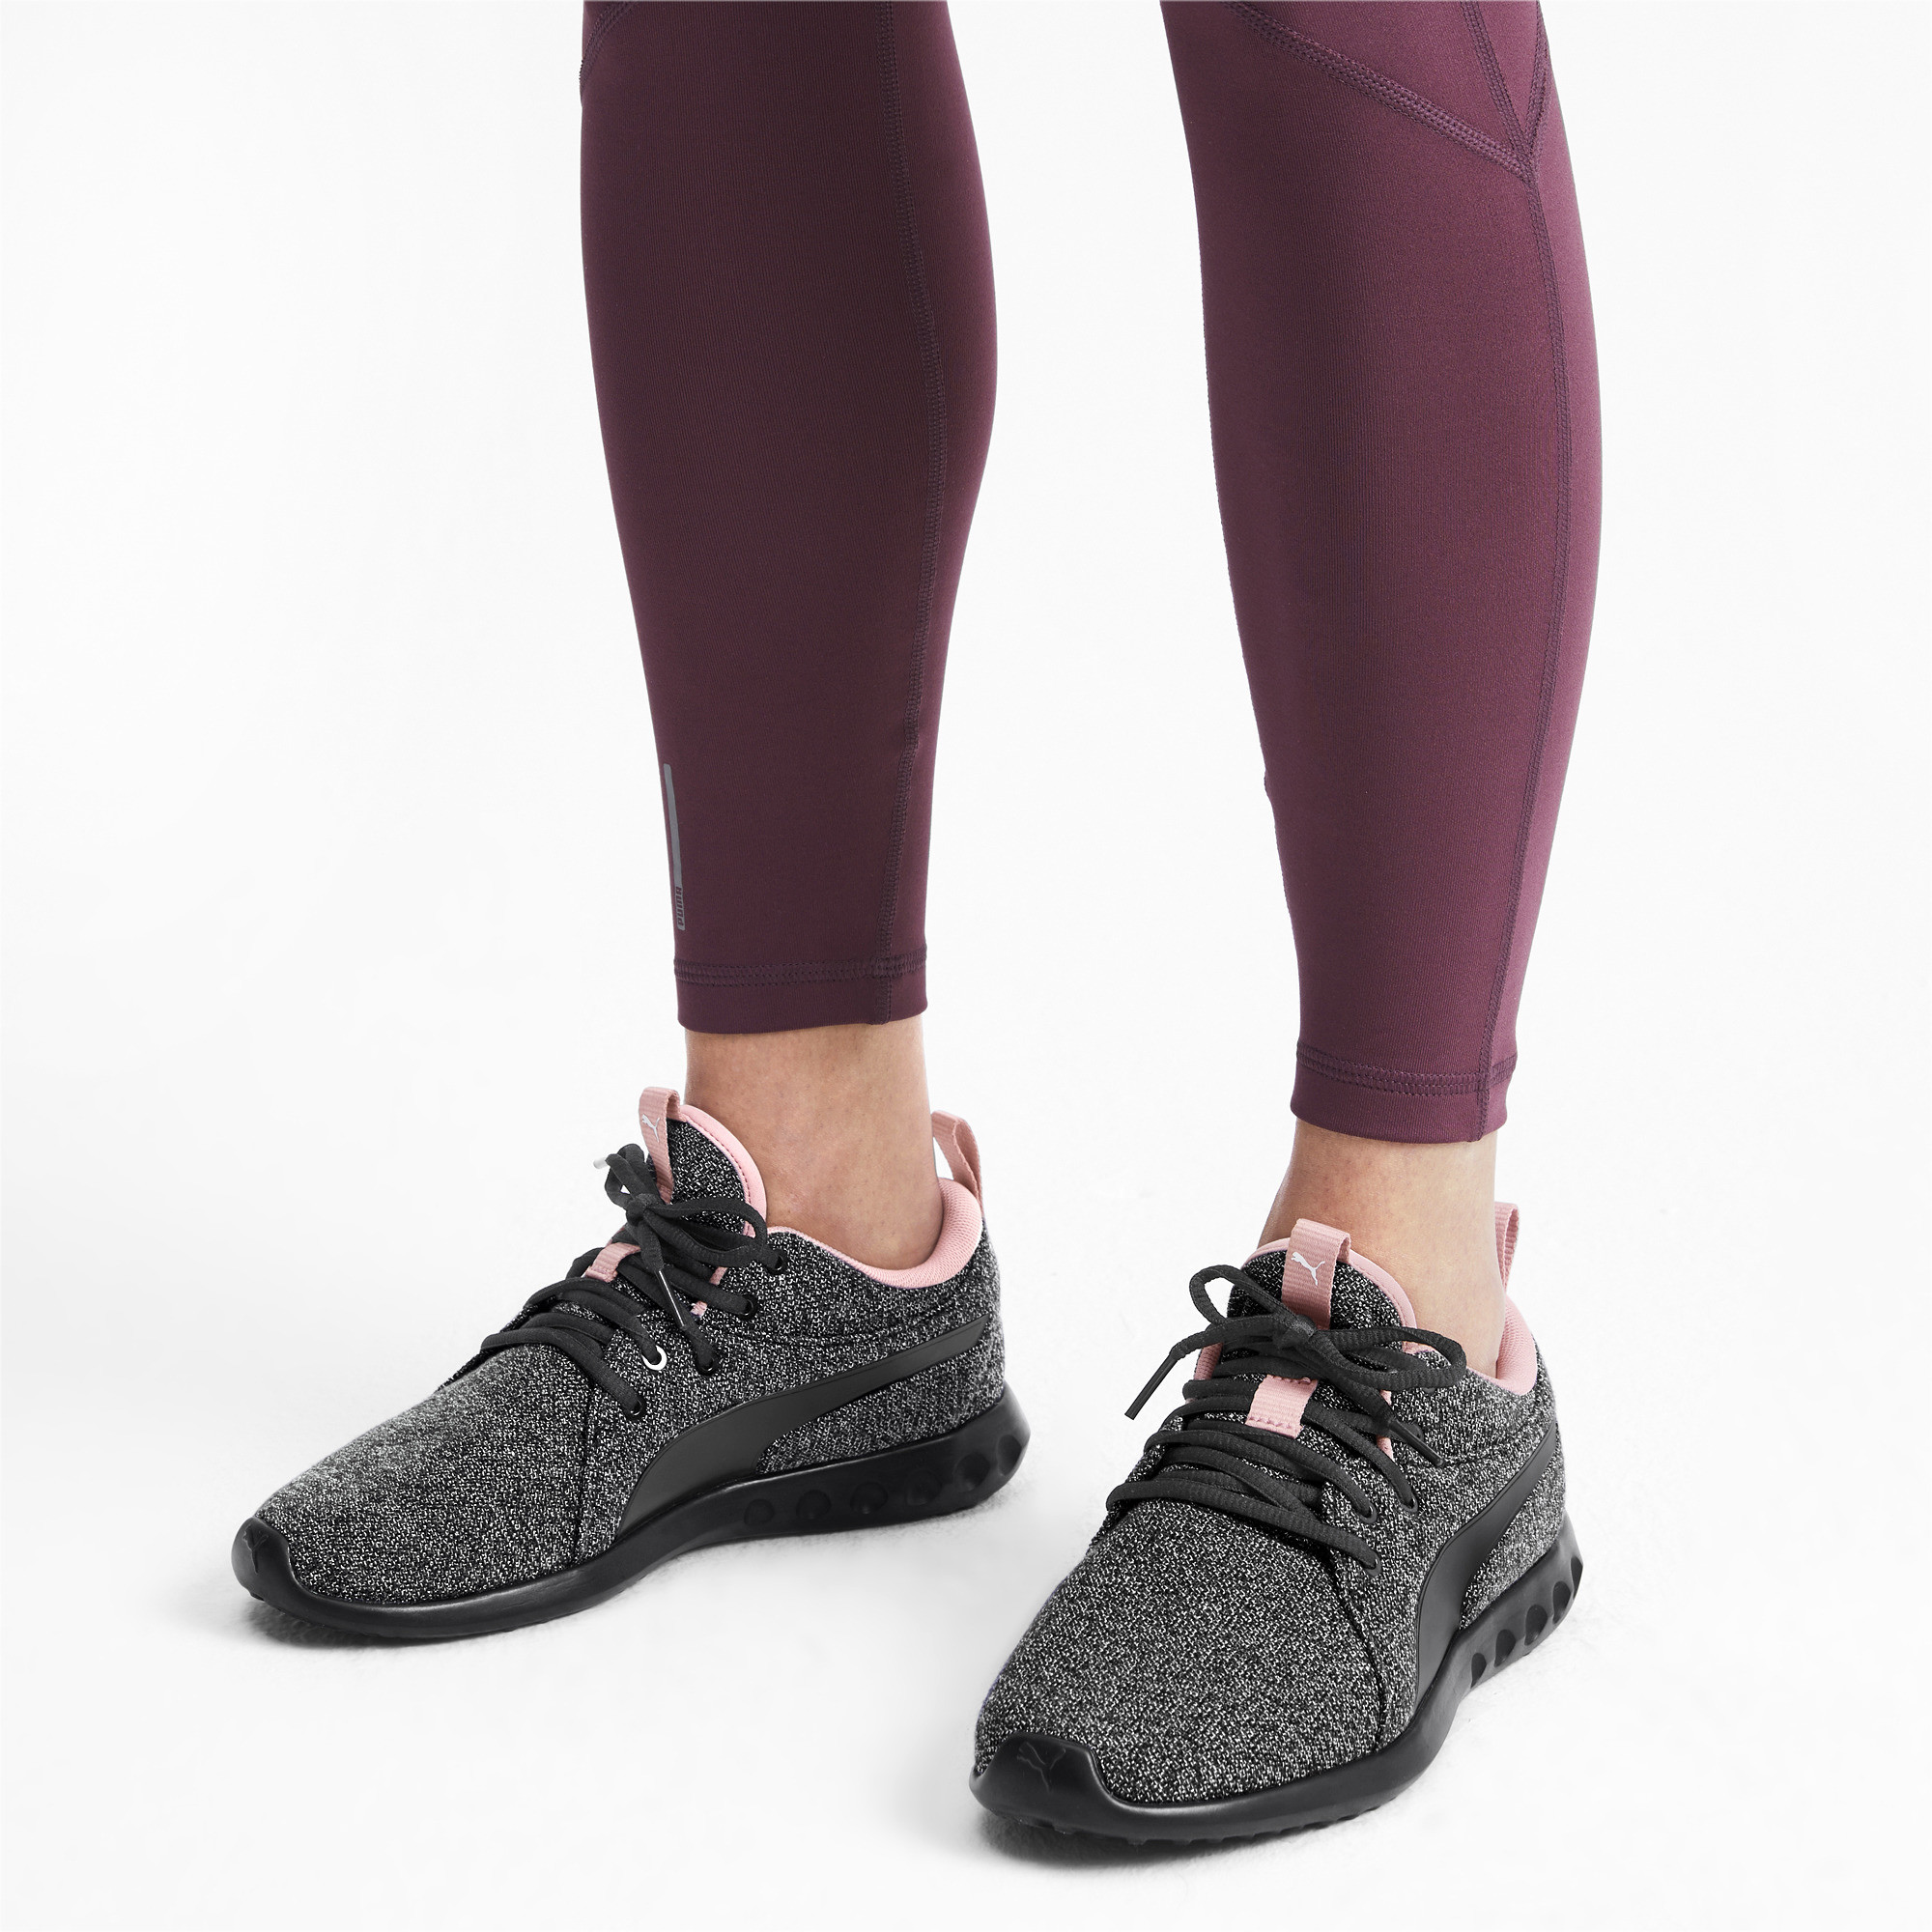 PUMA-Women-039-s-Carson-2-Knit-Running-Shoes thumbnail 20